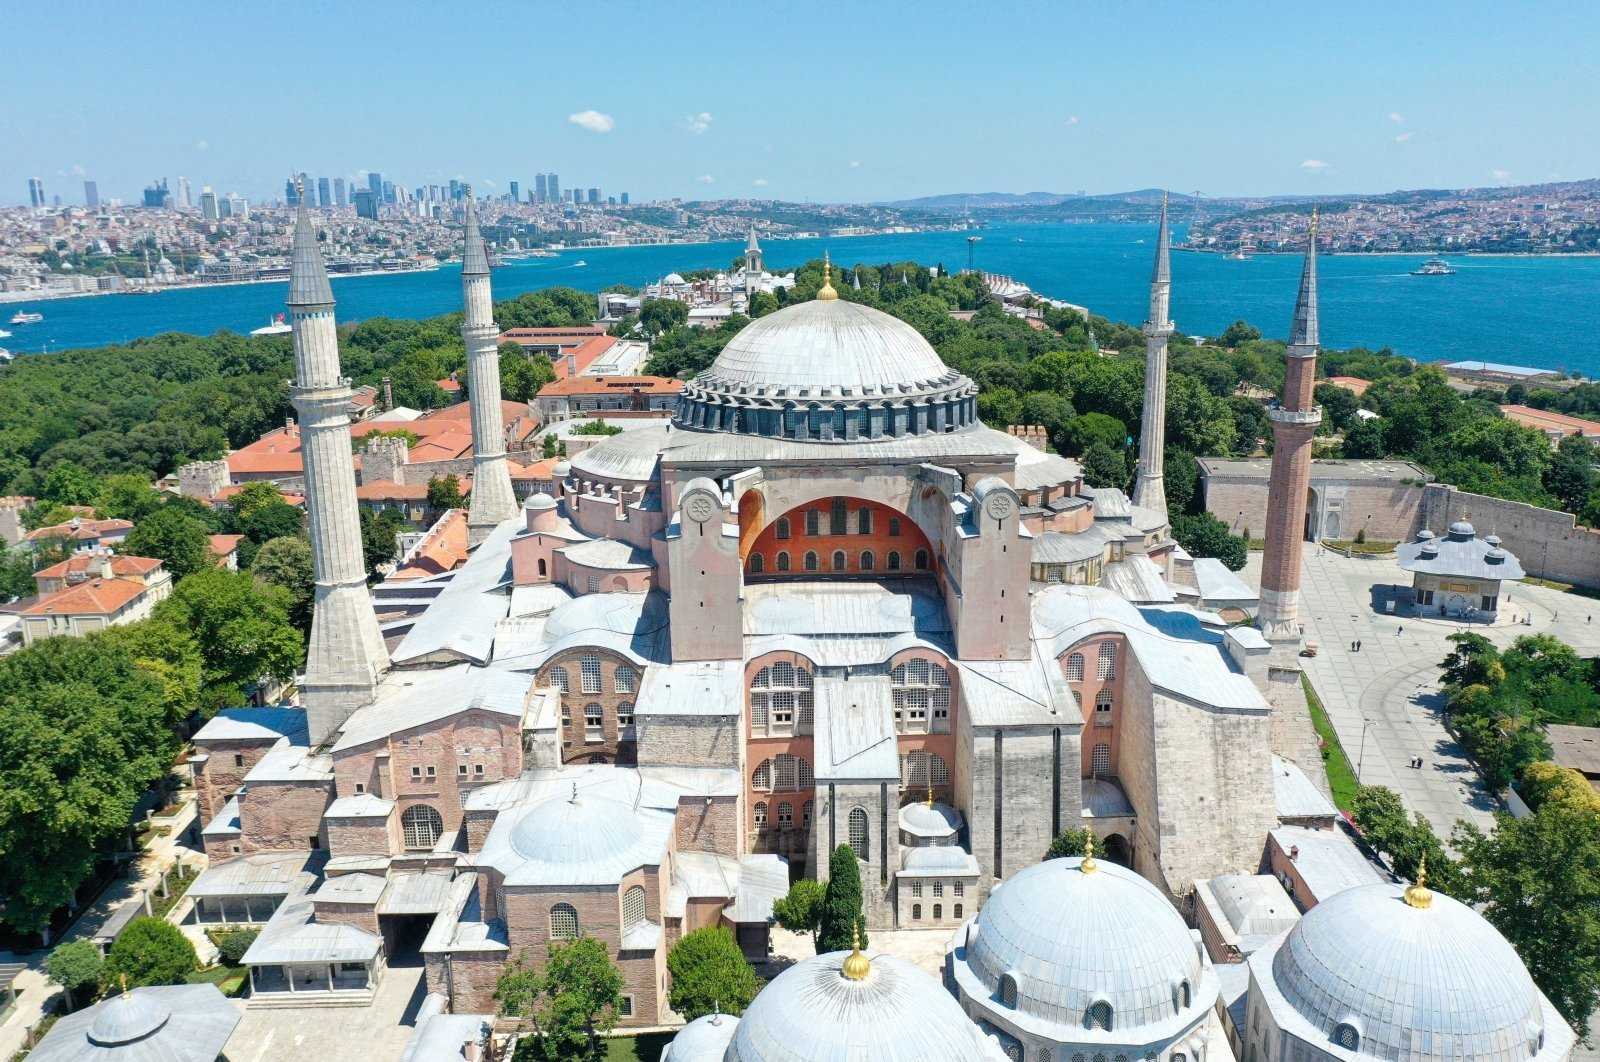 Ibrahim Hakkı Konyalı prevented the destruction of the minarets of Hagia Sophia, seen in this photo provided on July 22, 2020. (AA Photo)